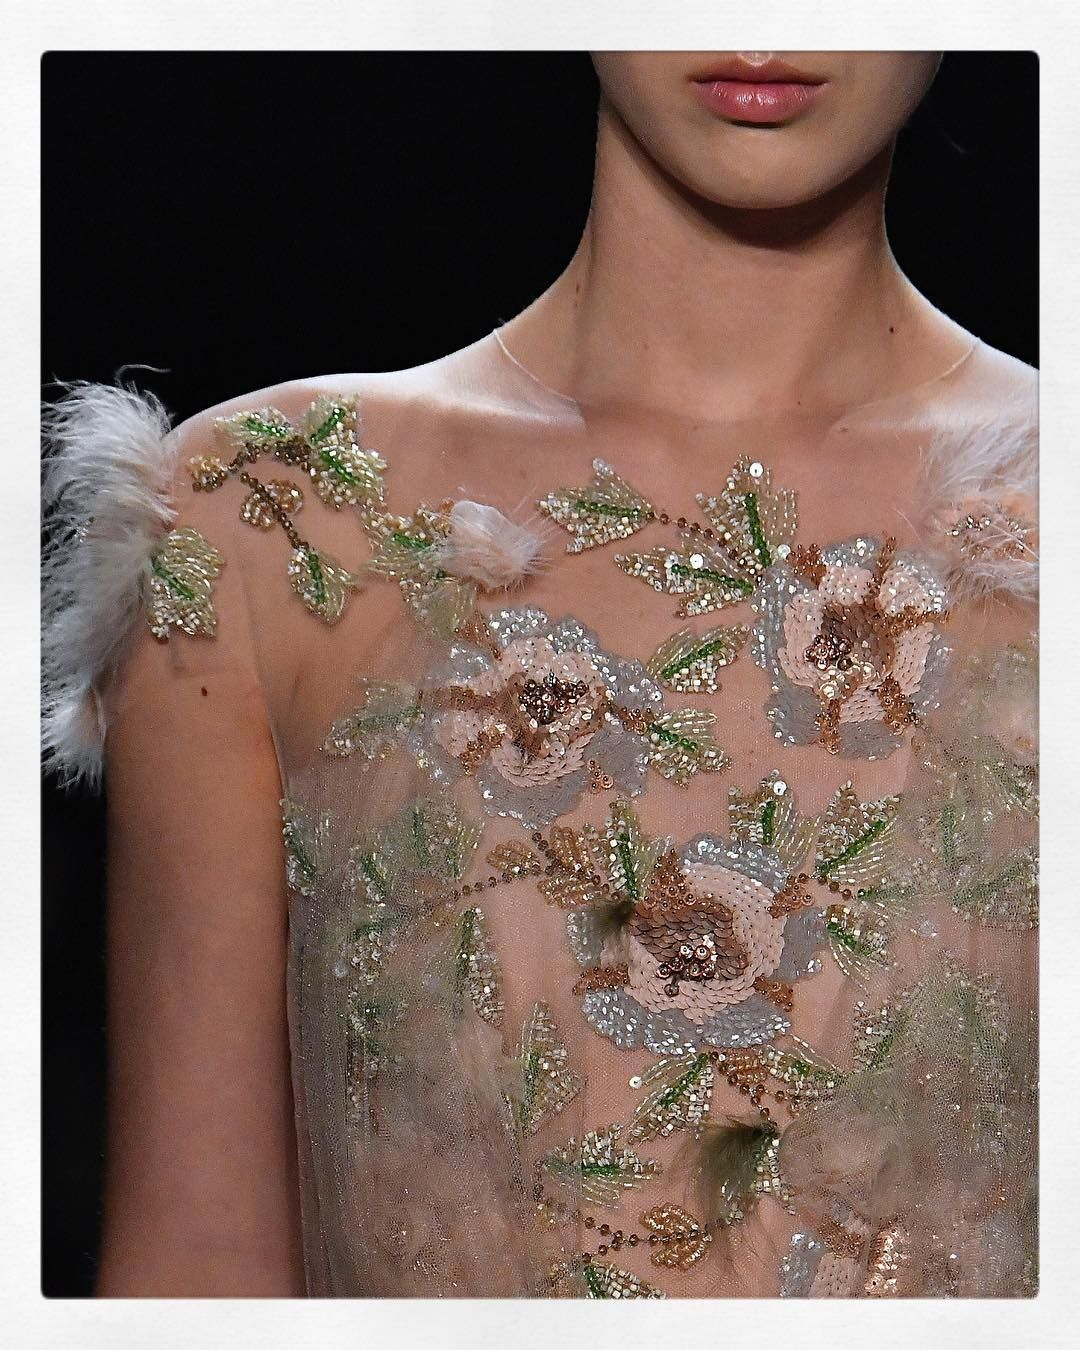 Details from #fw17marchesa!